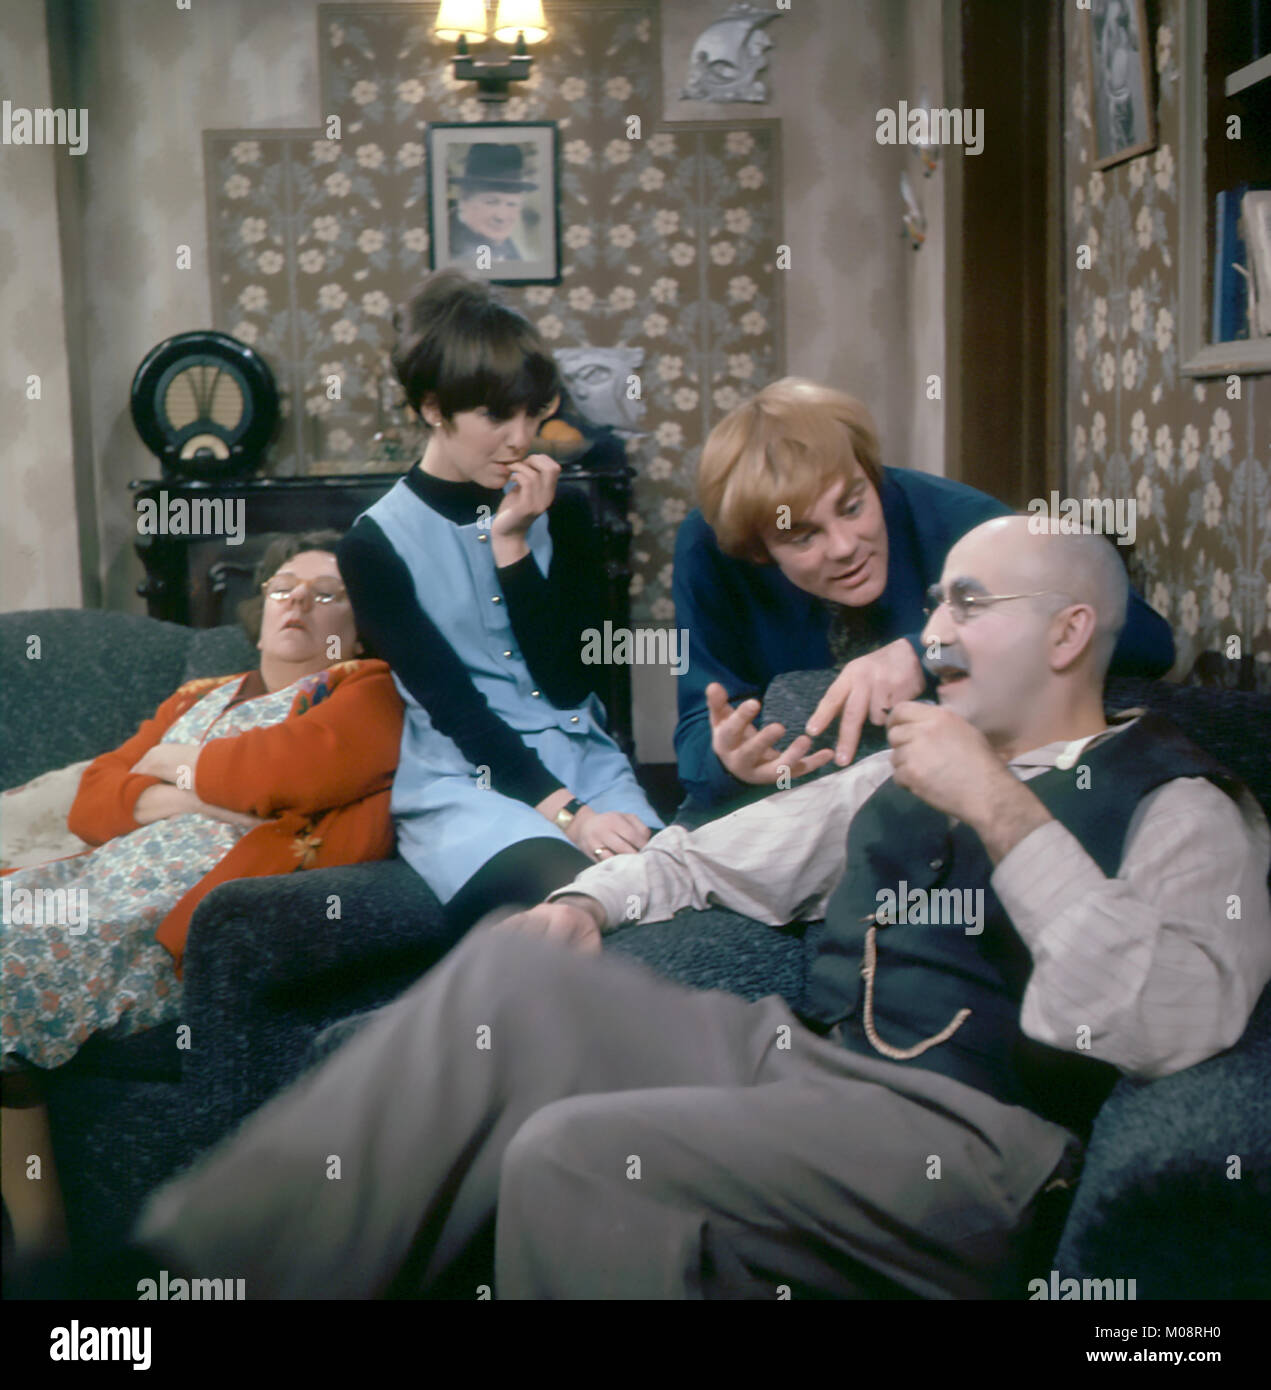 TILL DEATH US DO PART BBC TV series 1965-1975. From left: Dandy Nichols, Una Stubbs, Anthony Booth, Warren Mitchell. - Stock Image